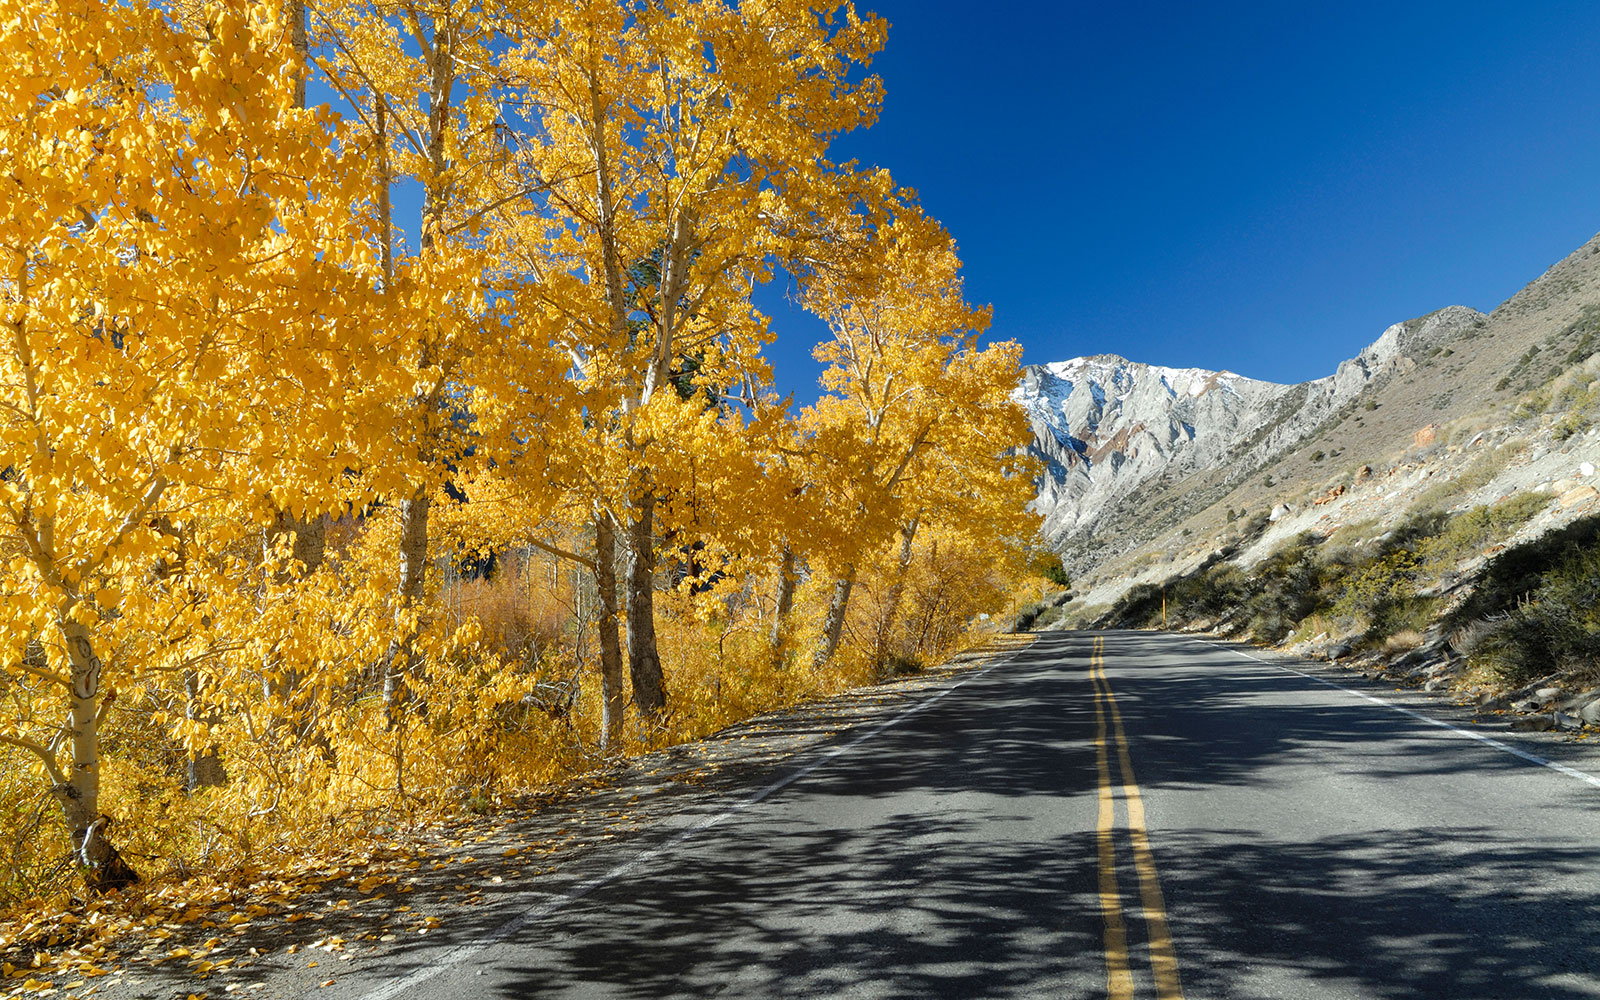 mountain roads through foliage in the Eastern Sierras, CA